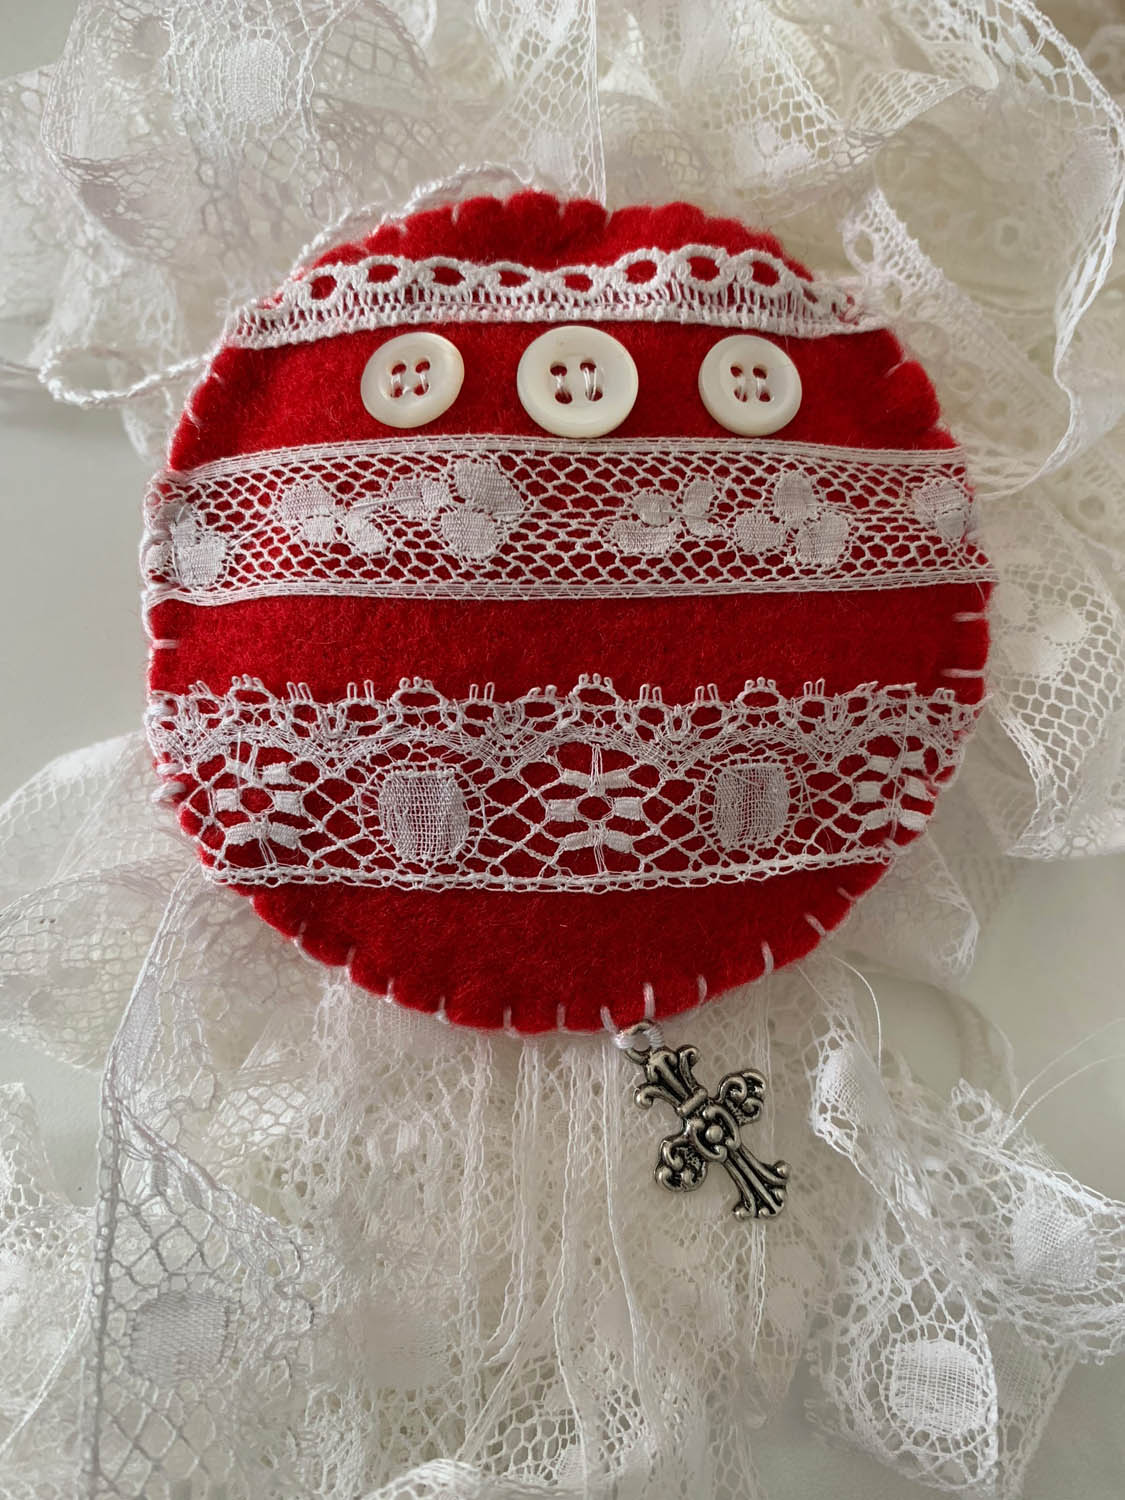 Finished hand made lace-embellished red felt ornament with cross charm